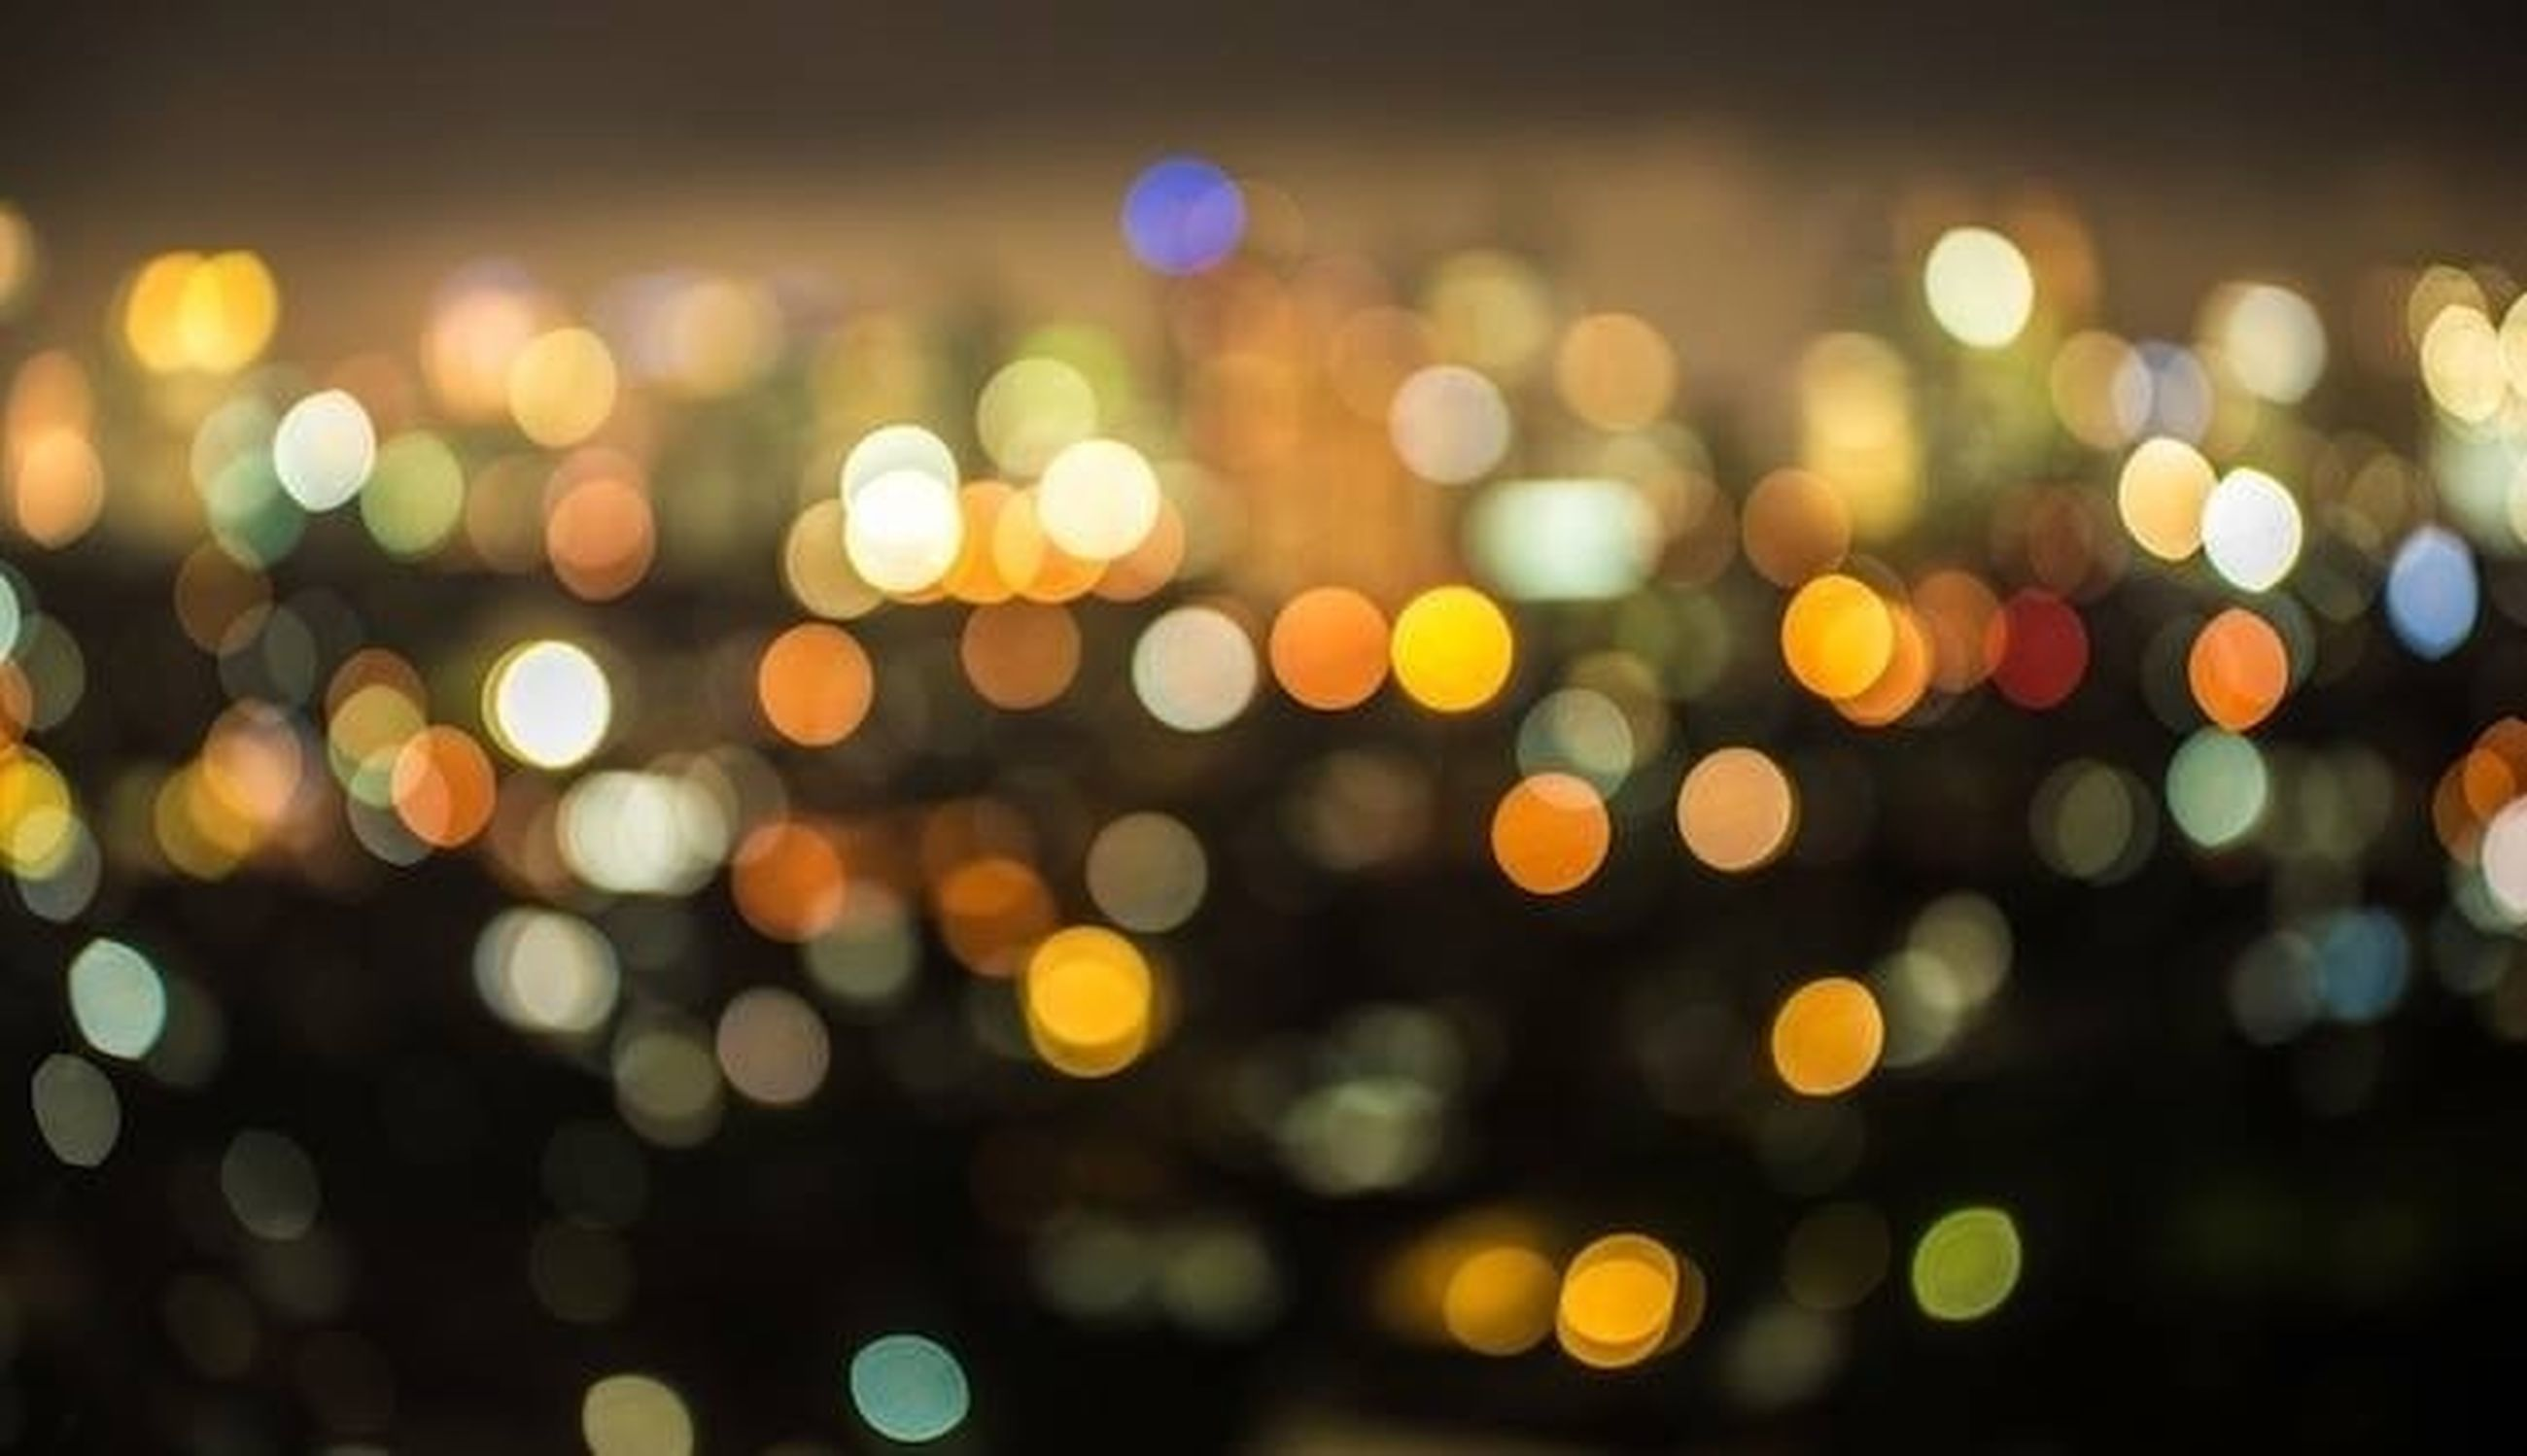 illuminated, night, defocused, lighting equipment, multi colored, light - natural phenomenon, glowing, city, lens flare, light, circle, no people, street, abstract, outdoors, backgrounds, blurred motion, pattern, long exposure, full frame